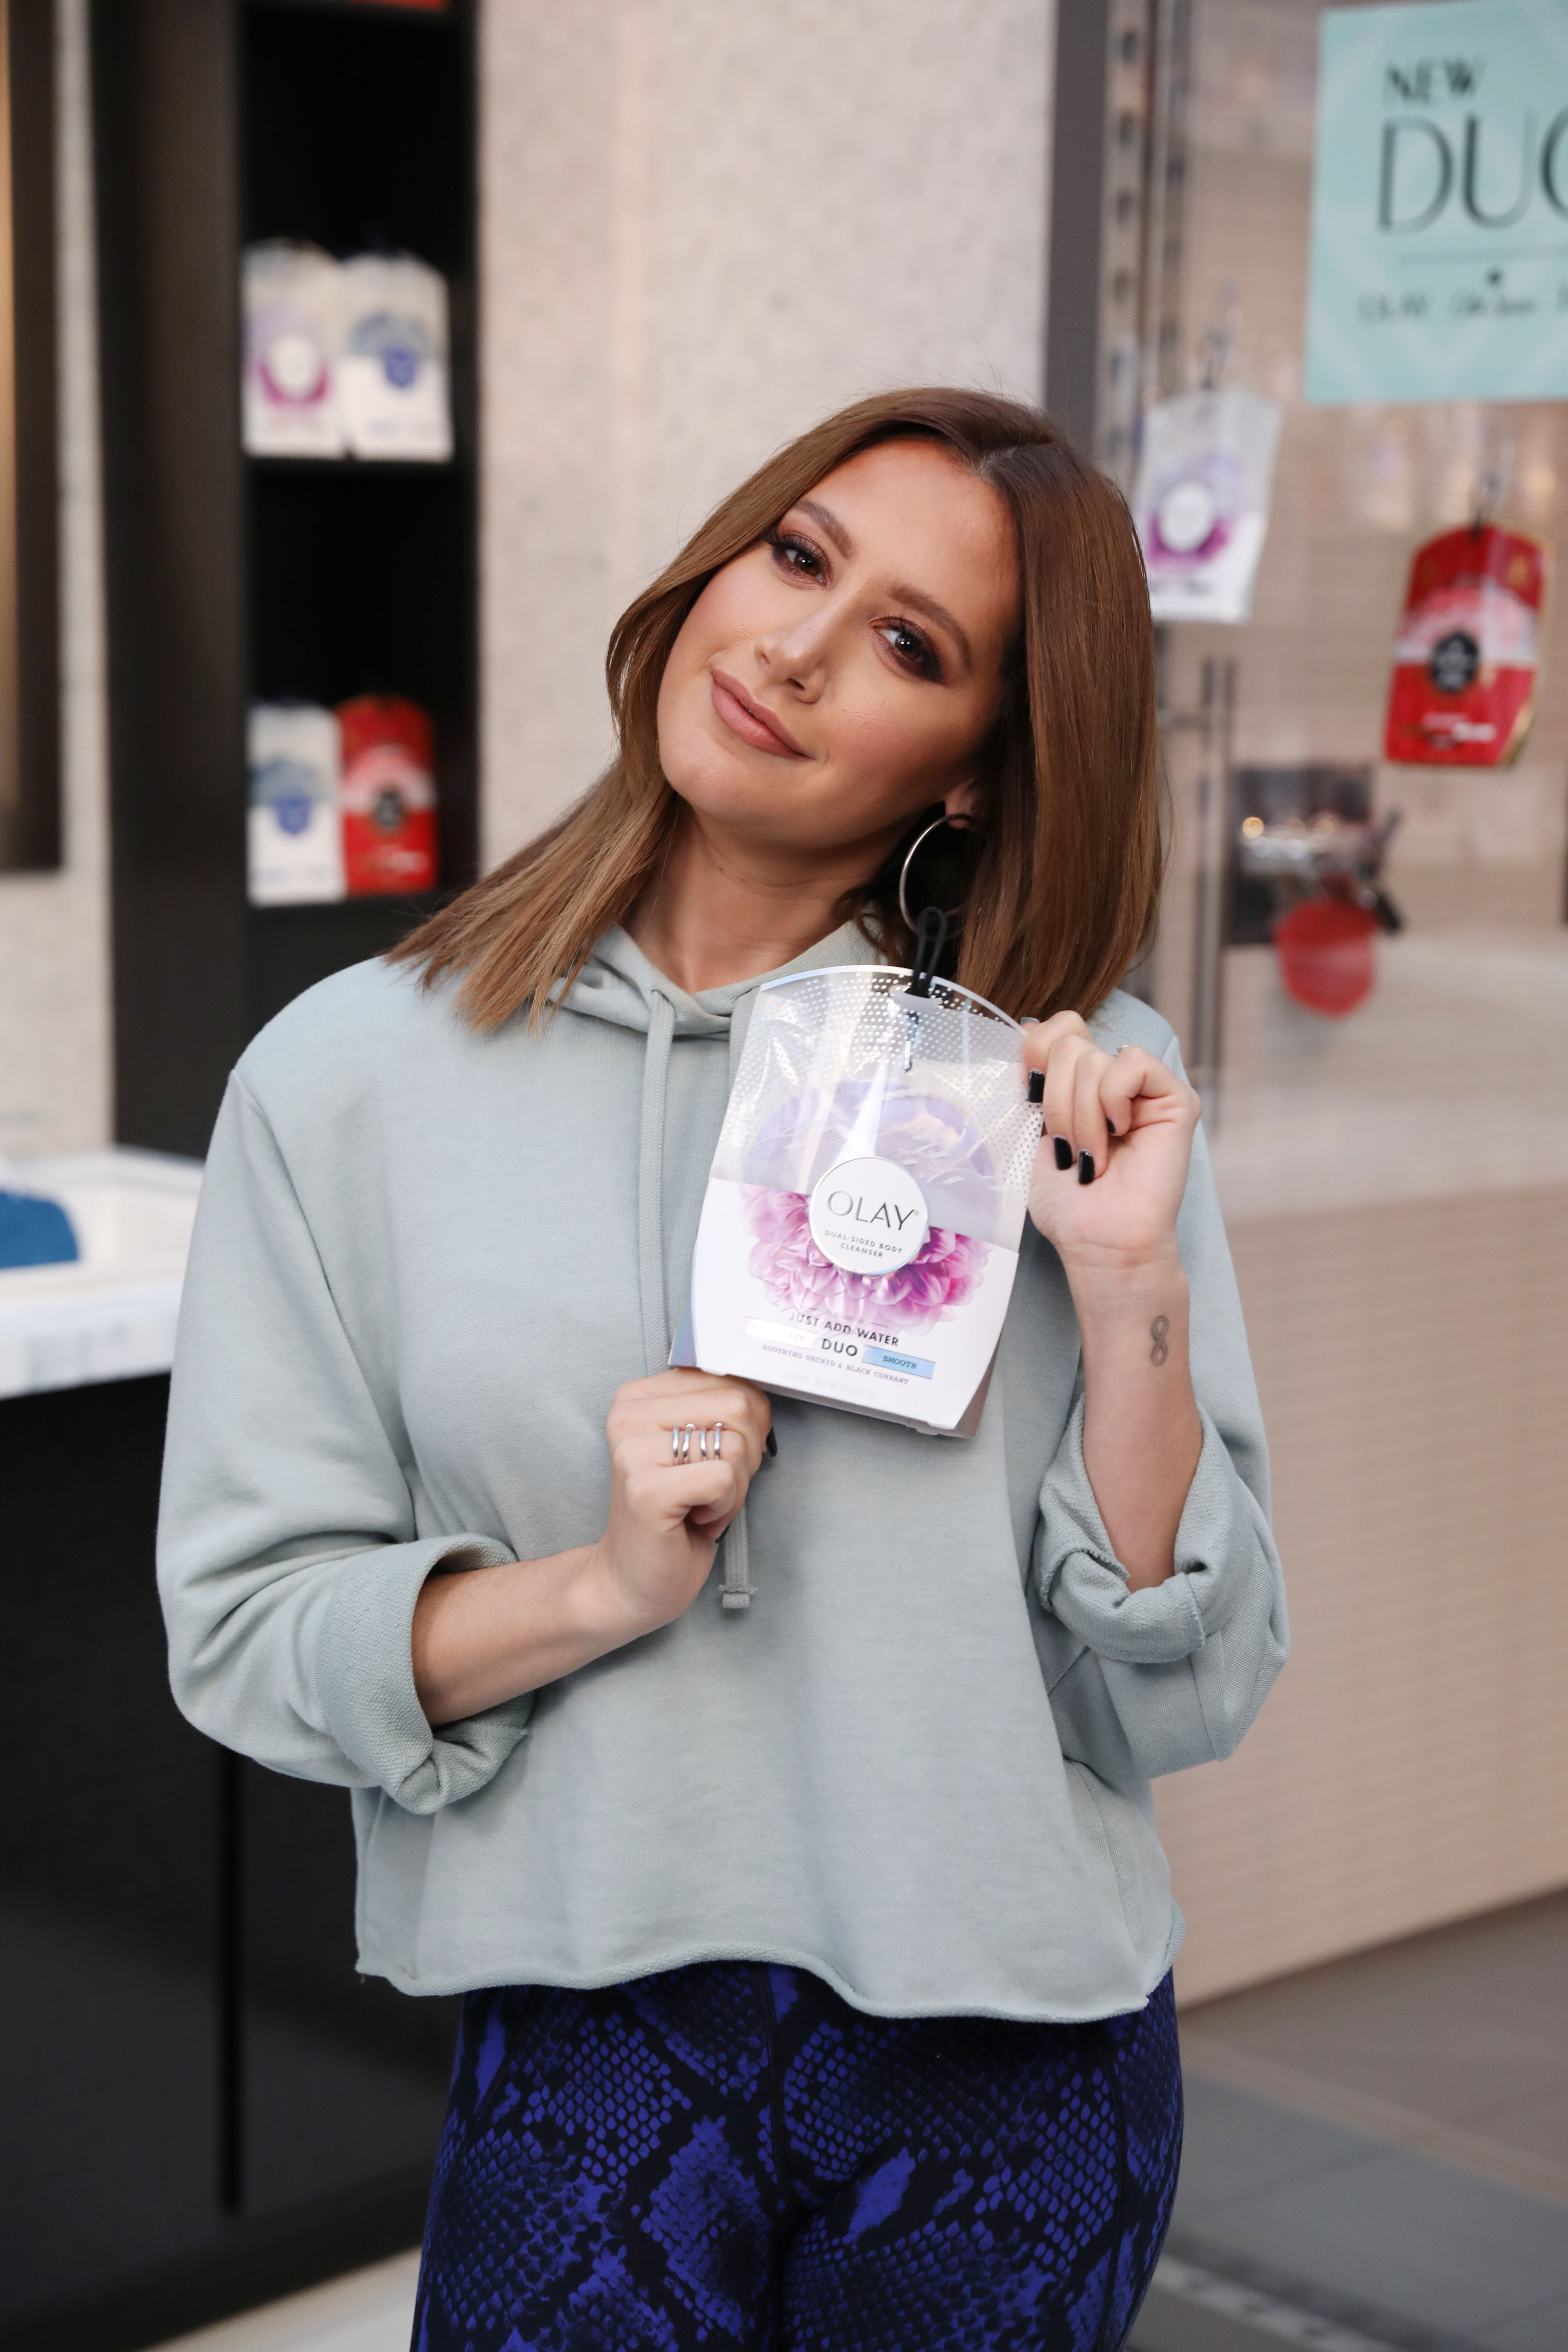 Actress Ashley Tisdale reinvented her morning as she helped launch DUO, the latest body cleanser from Olay, Ivory and Old Spice. The actress attended a Daybreaker party and yoga session at Hollywood & Highland on Thursday, Feb. 16, 2017, in Los Angeles. Learn more about the new product at cleansingduos.com (Photo by Matt Sayles for DUO/AP Images)